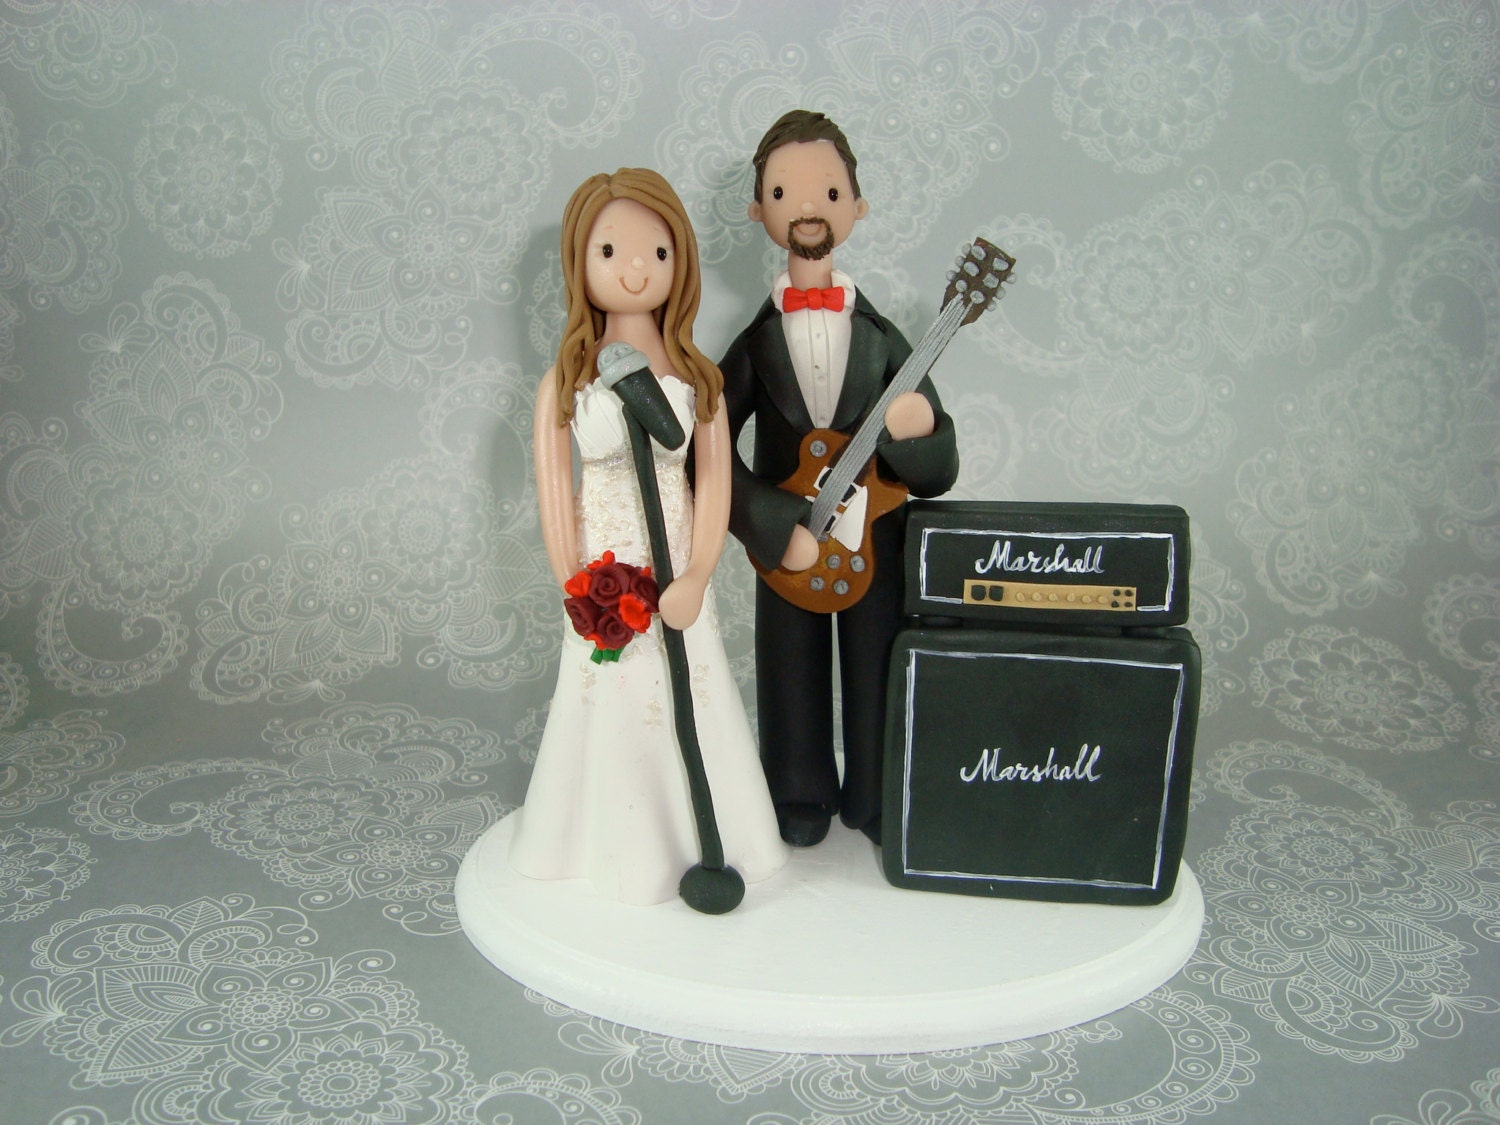 20 in addition Customized Bride Groom Music Theme furthermore Mercury 150 Optimax Fuel Filter additionally Bluerosechapter7 in addition Seat Belt Harness Simpson. on rock stars wedding cake topper